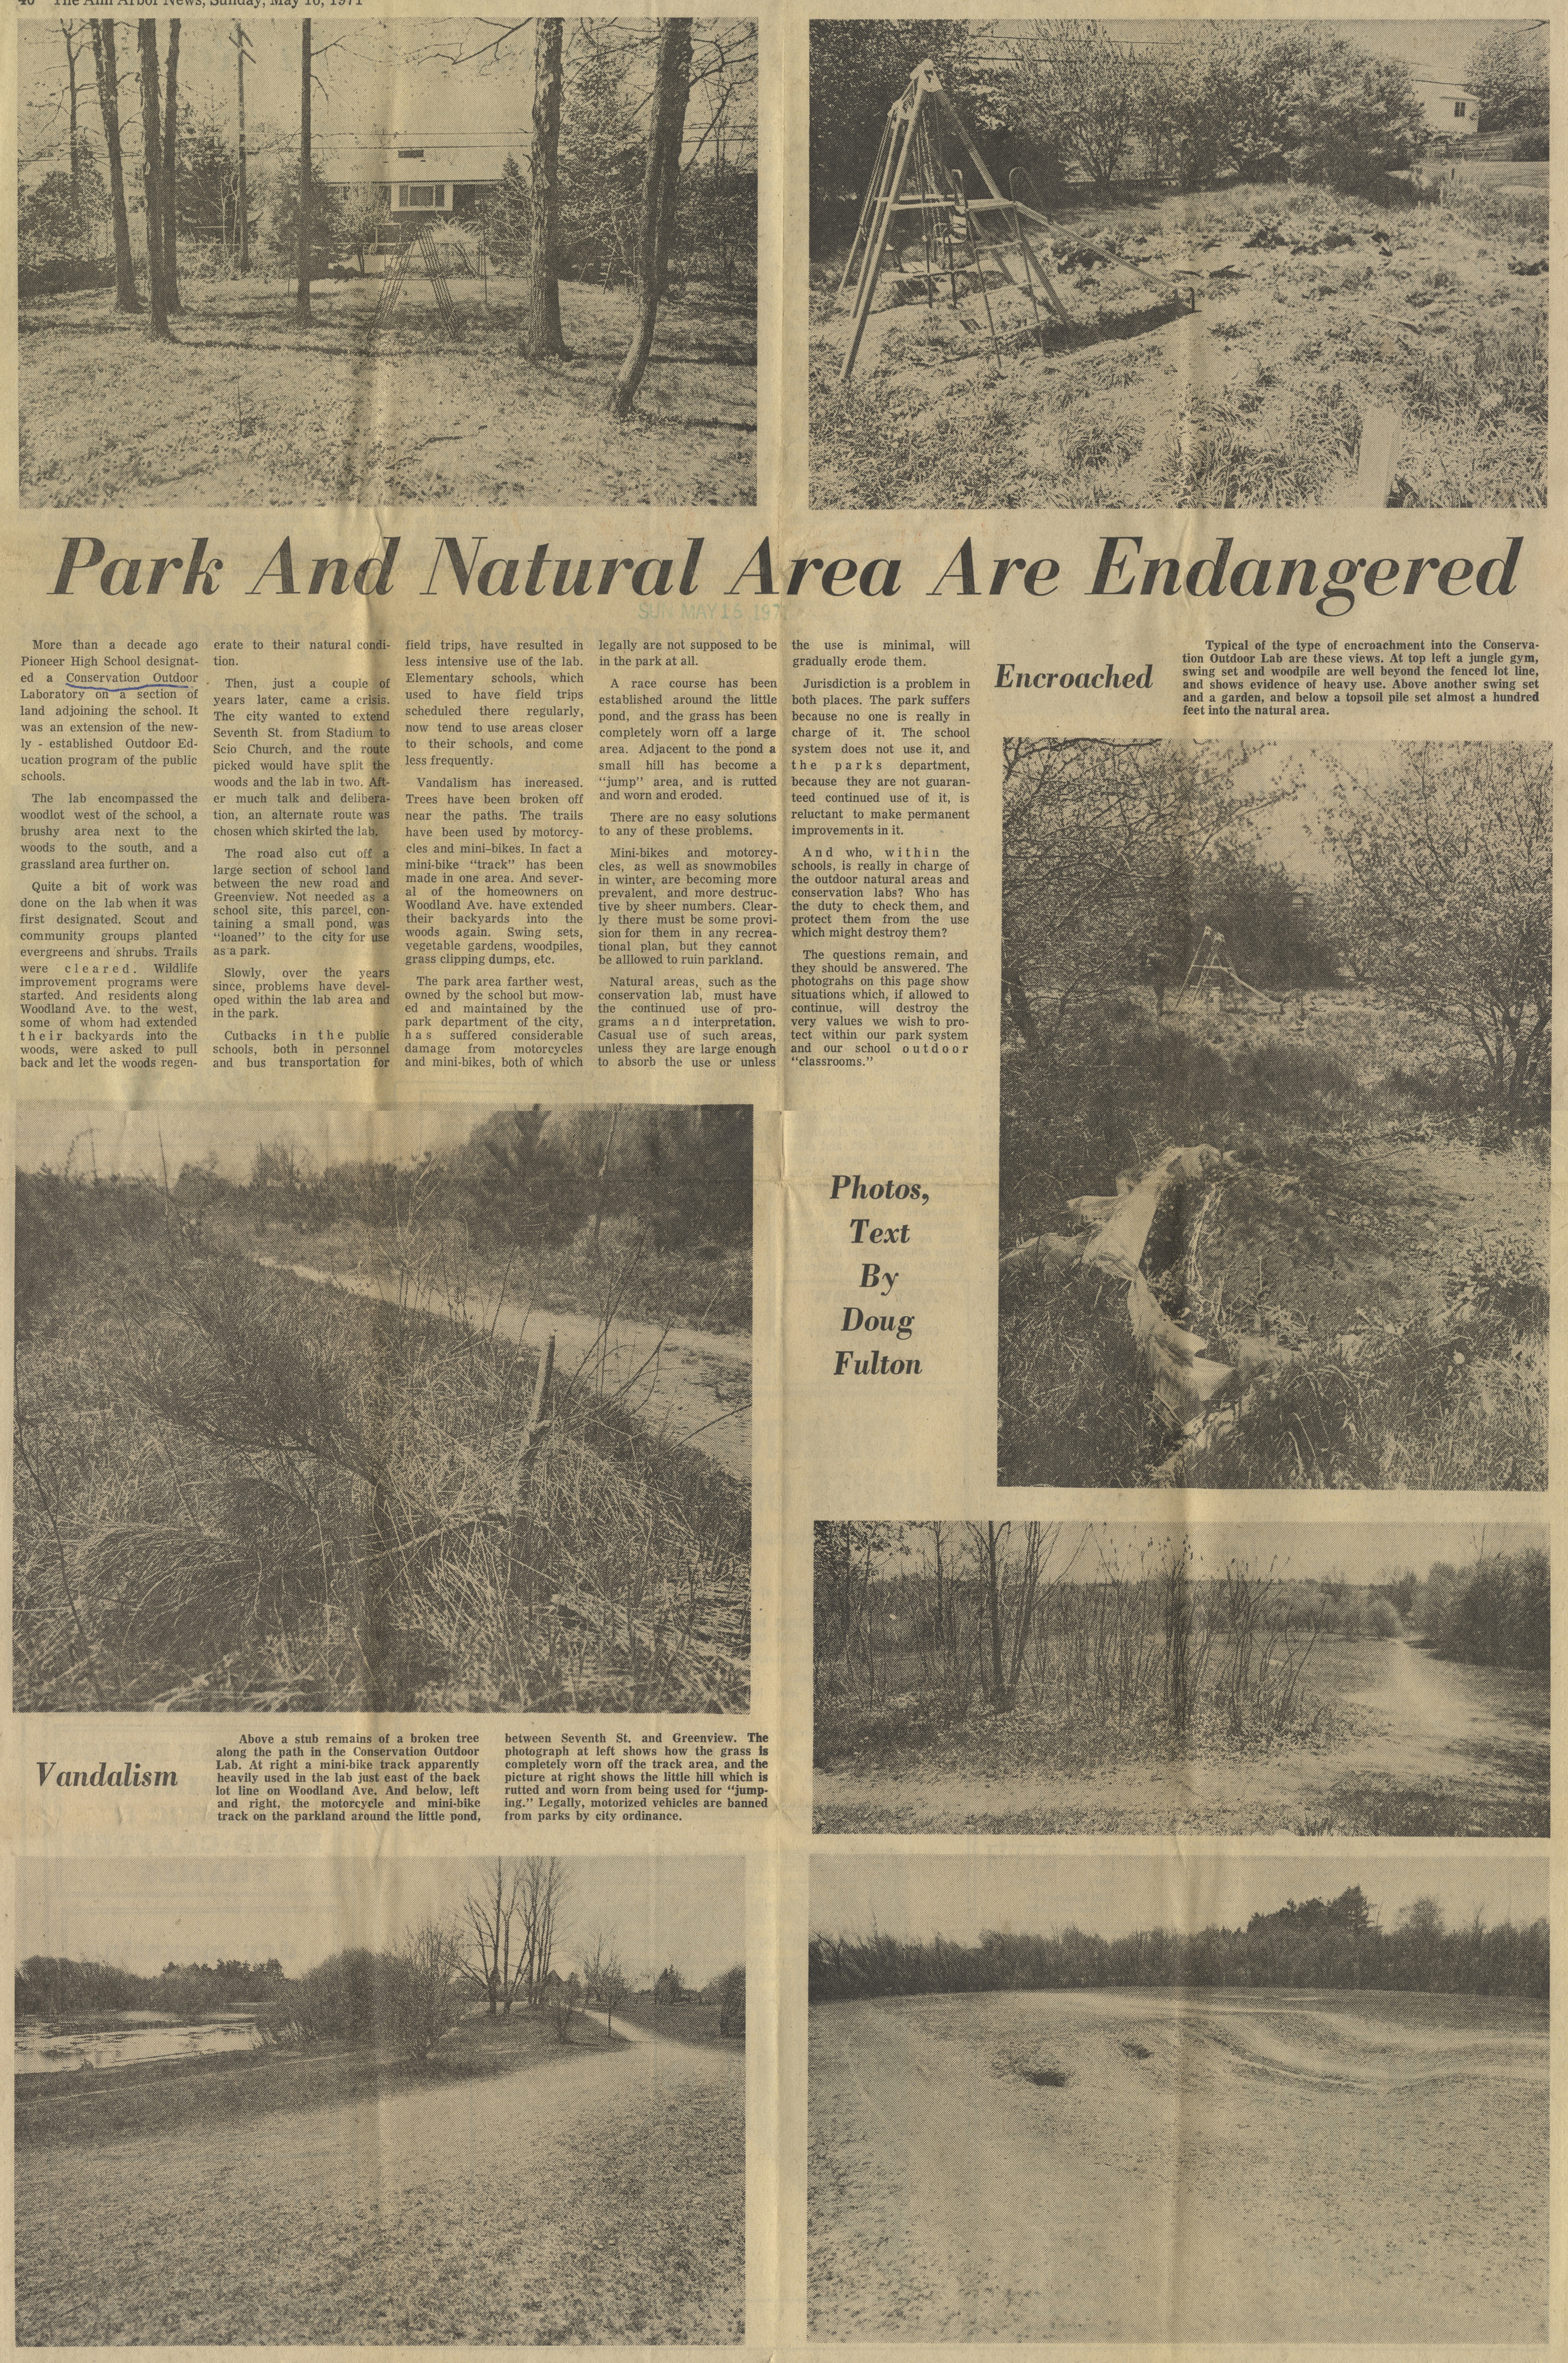 Park And Natural Area Are Endangered image